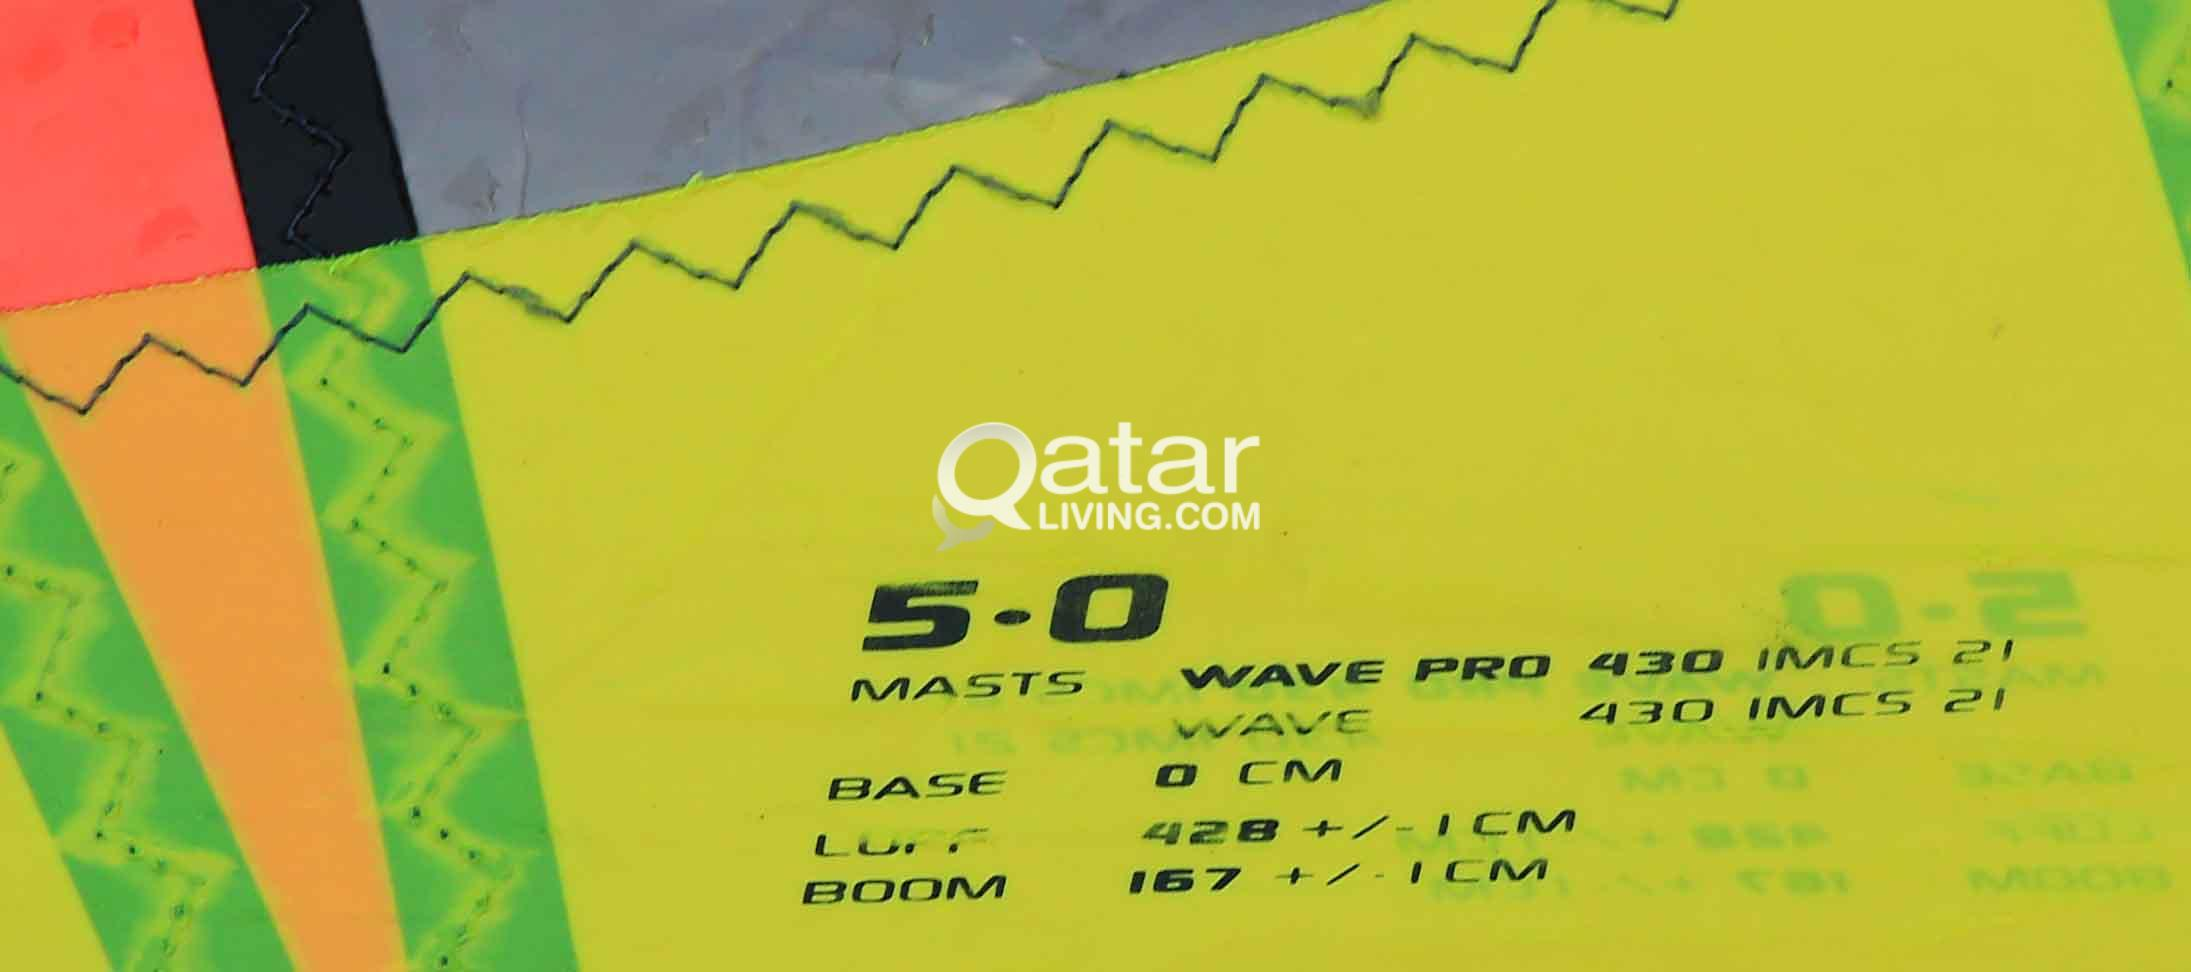 Windsurfing sails and boom for sale | Qatar Living